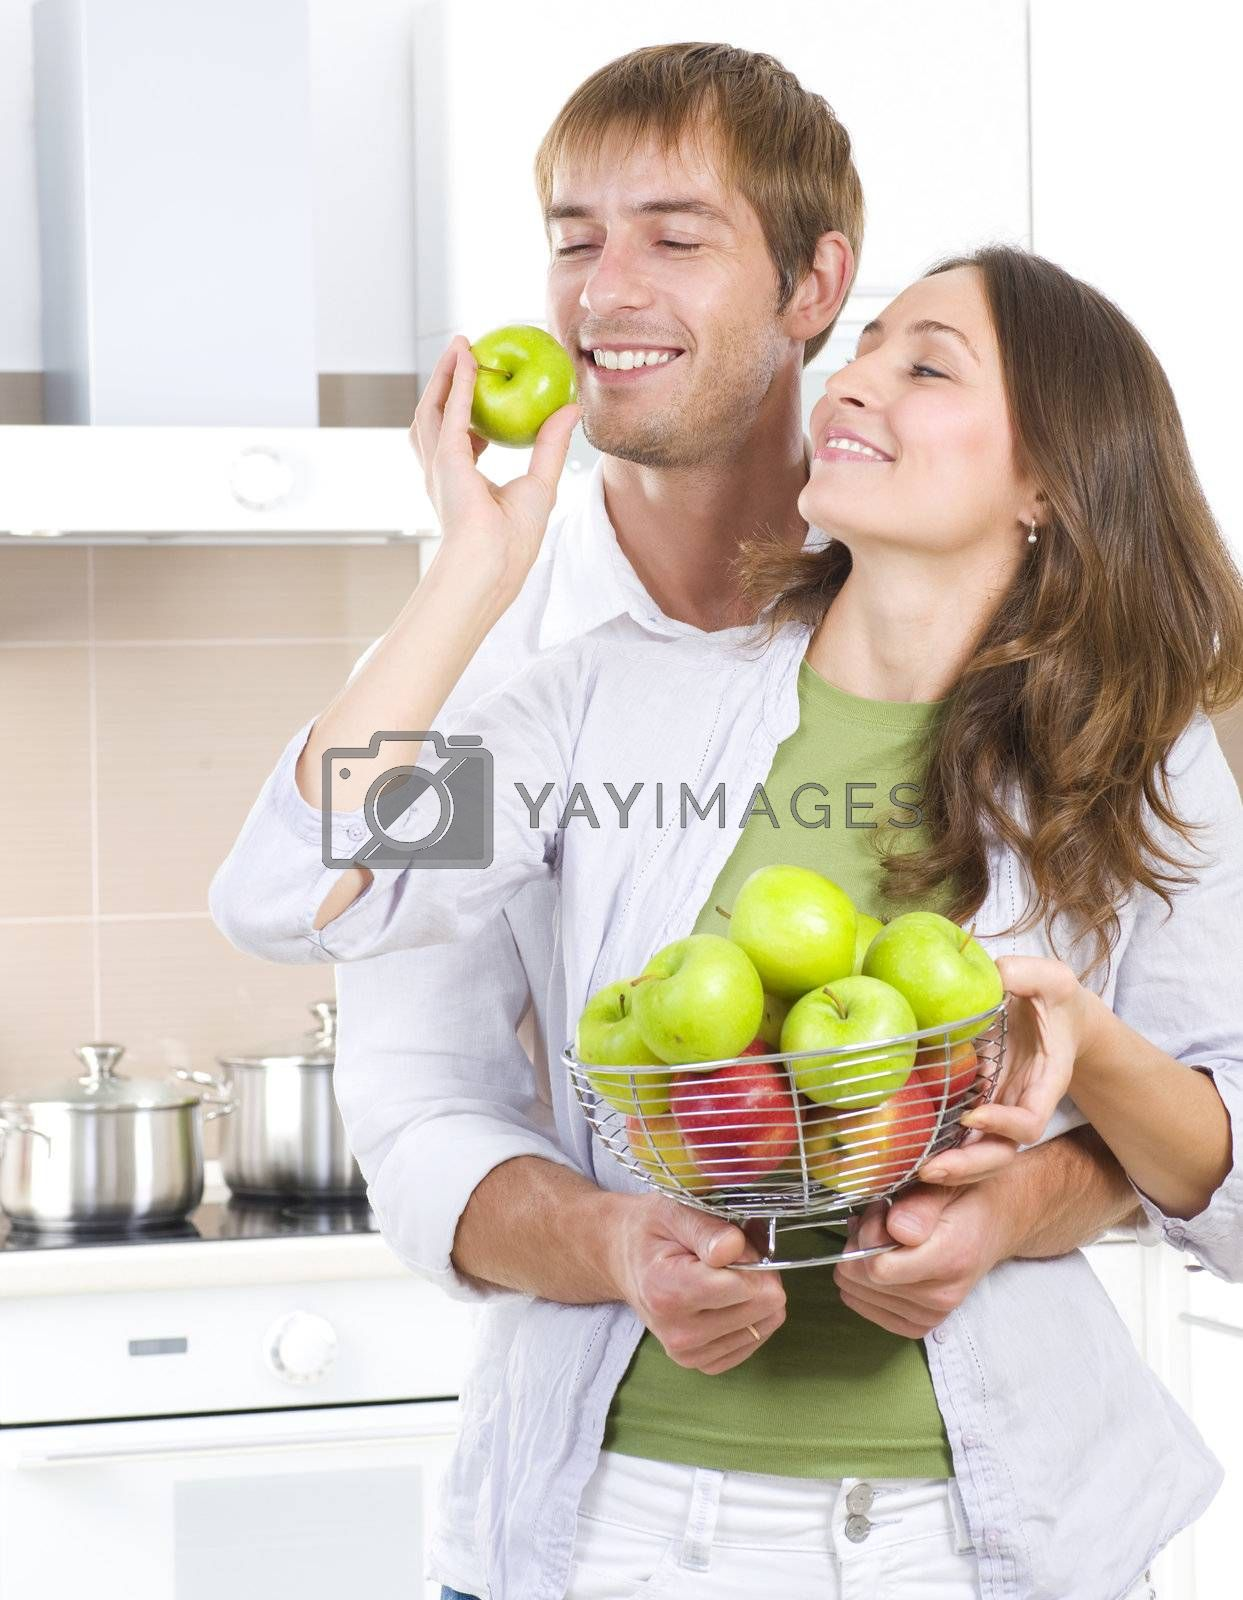 Lovely Sweet Couple eating fresh fruits.Healthy food.Diet by Subbotina Anna